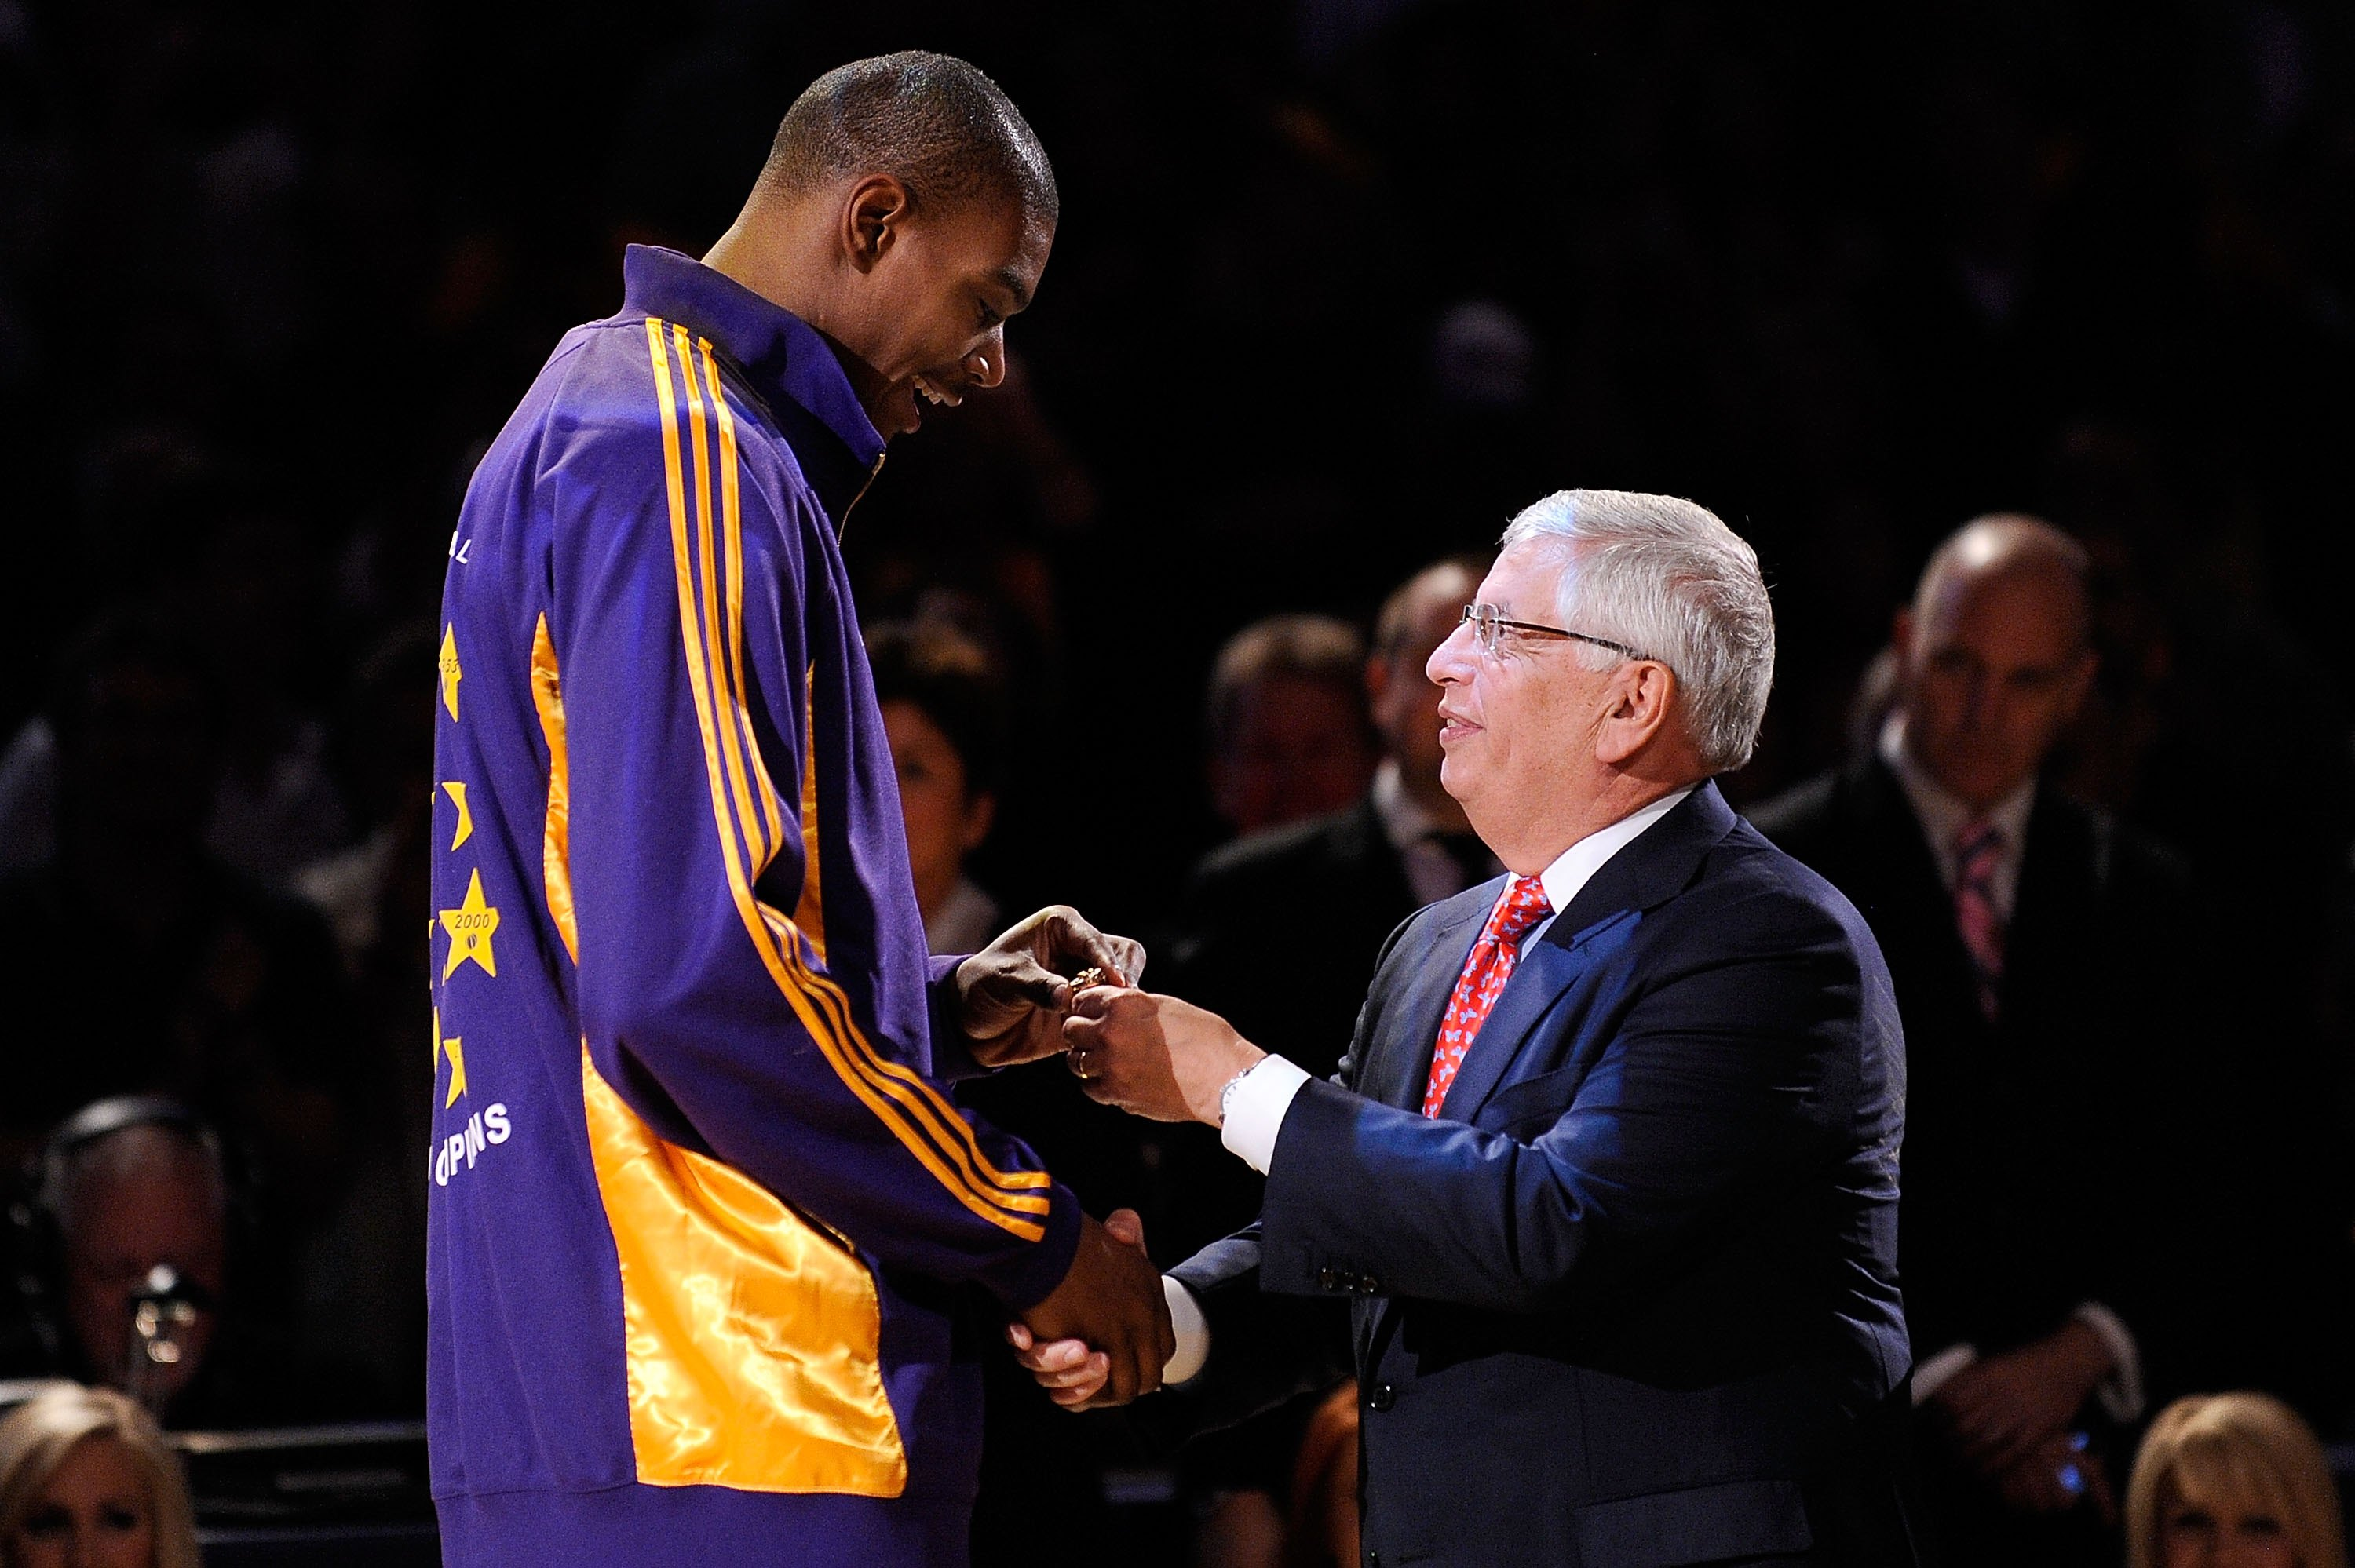 LOS ANGELES, CA - OCTOBER 27:  Andrew Bynum #17 of the Los Angeles Lakers receives his 2009 NBA Championship ring from NBA Commissioner David Stern before the season opening game against the Los Angeles Clippers at Staples Center on October 27, 2009 in Lo